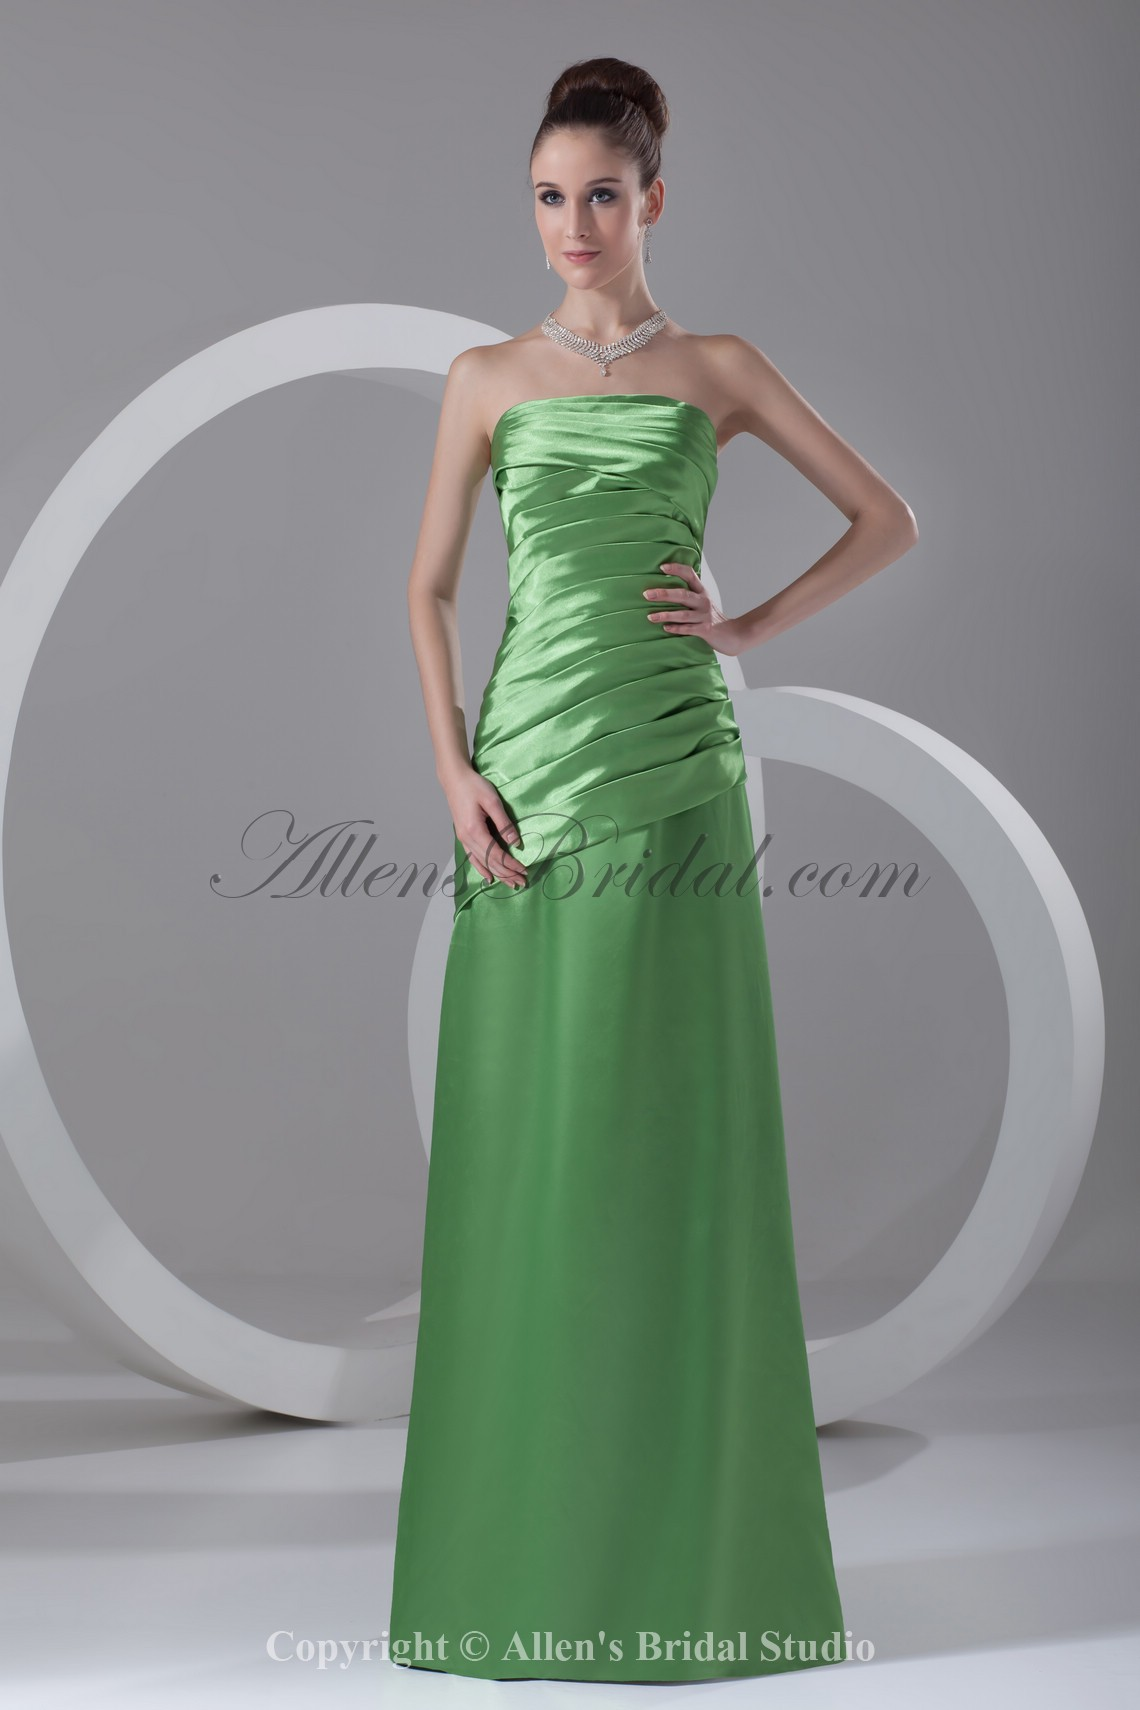 /455-3638/satin-strapless-neckline-floor-length-a-line-directionally-ruched-prom-dress.jpg